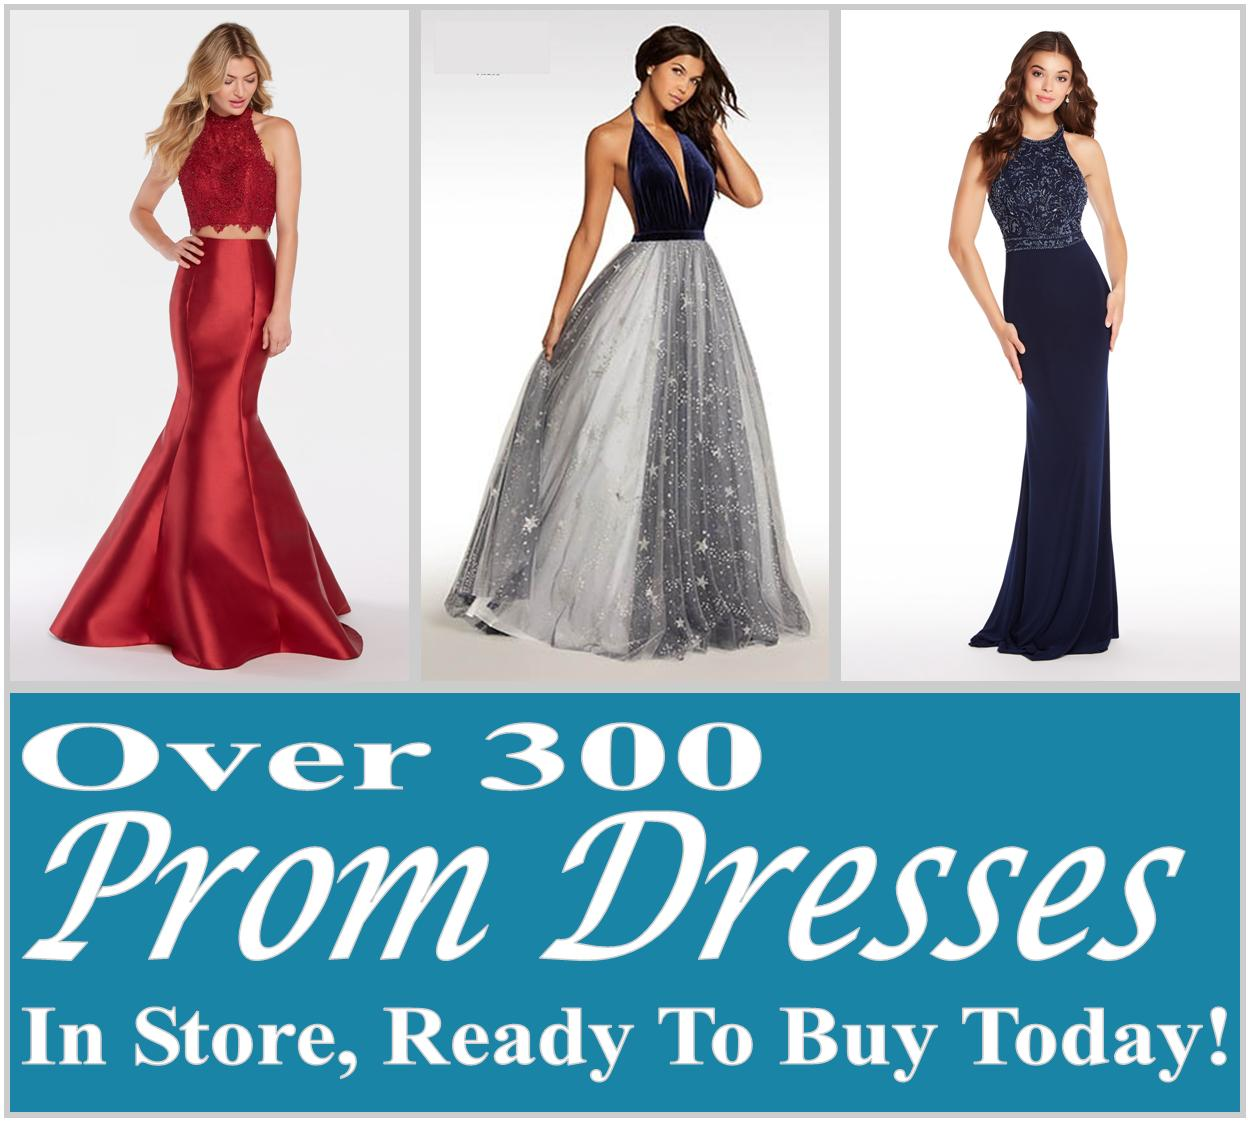 Prom dresses in Albuquerque New Mexico